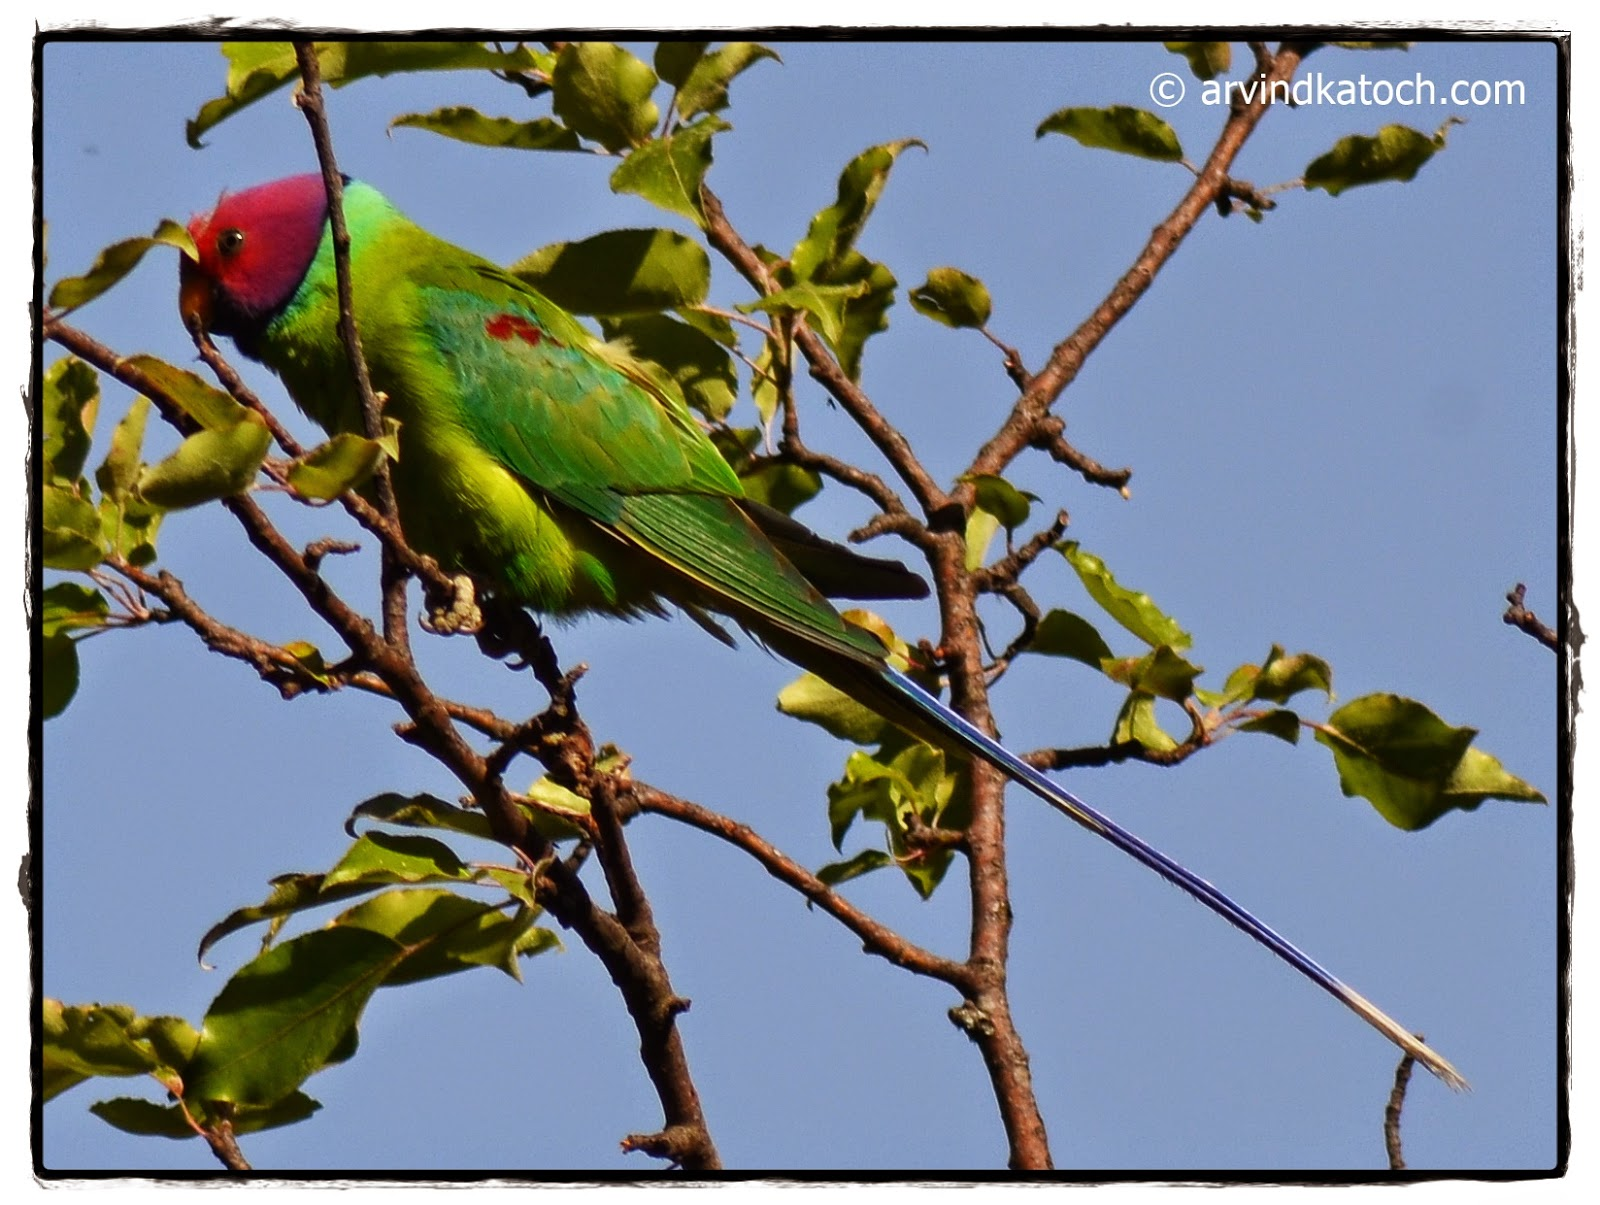 Plum-headed Parakeet, Parakeet,